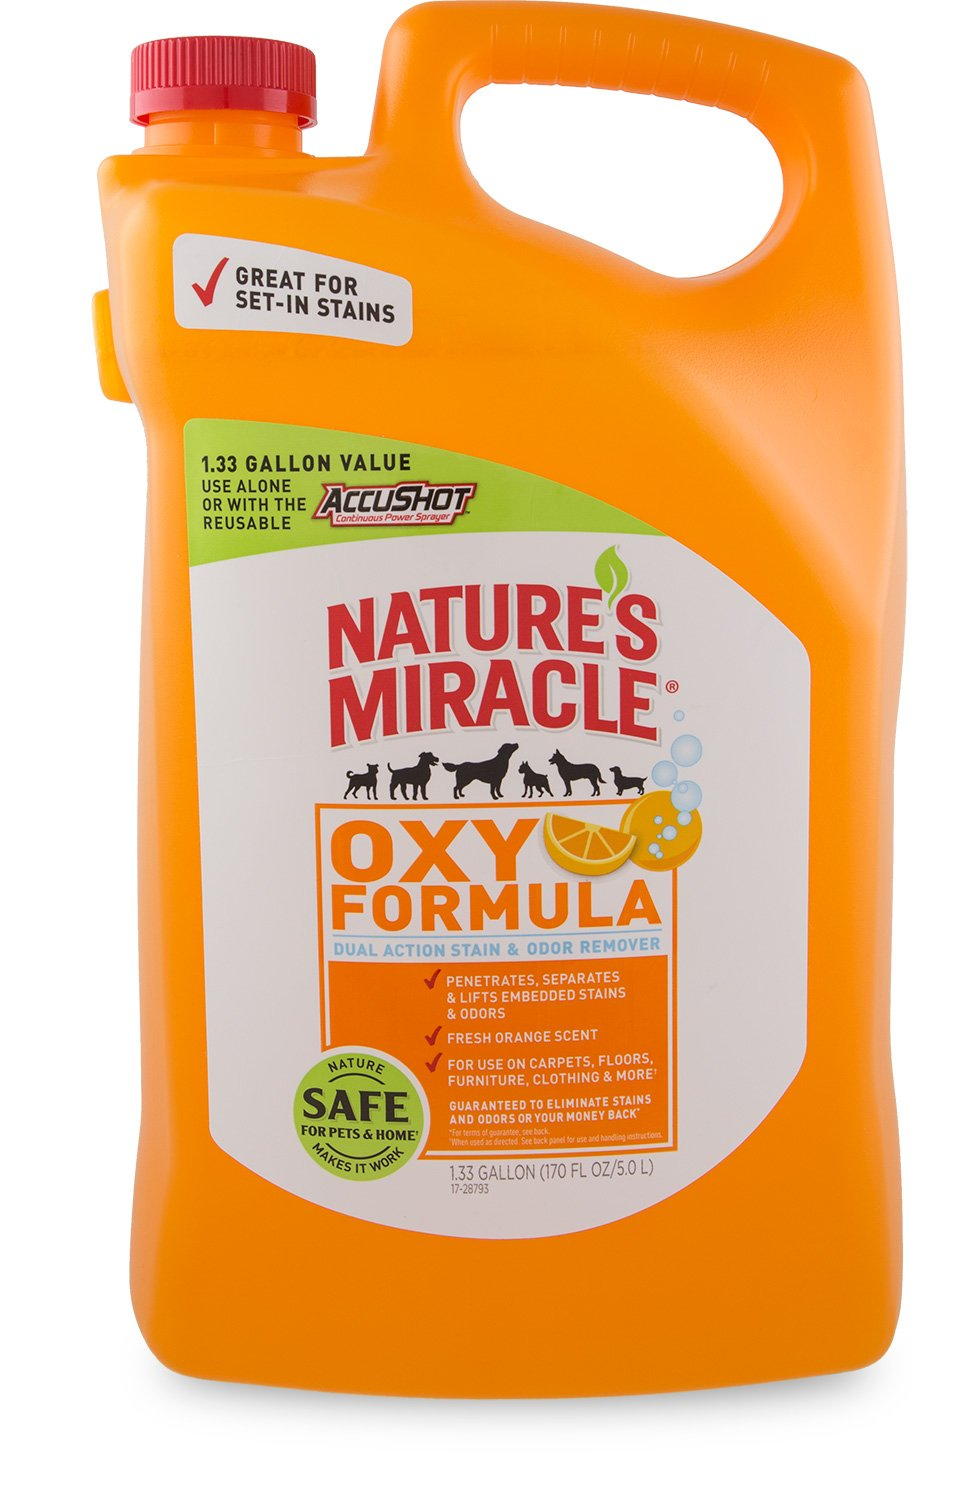 Nature's Miracle Oxy Pet Stain & Odor Remover, 1.33 gallon (P-96931)